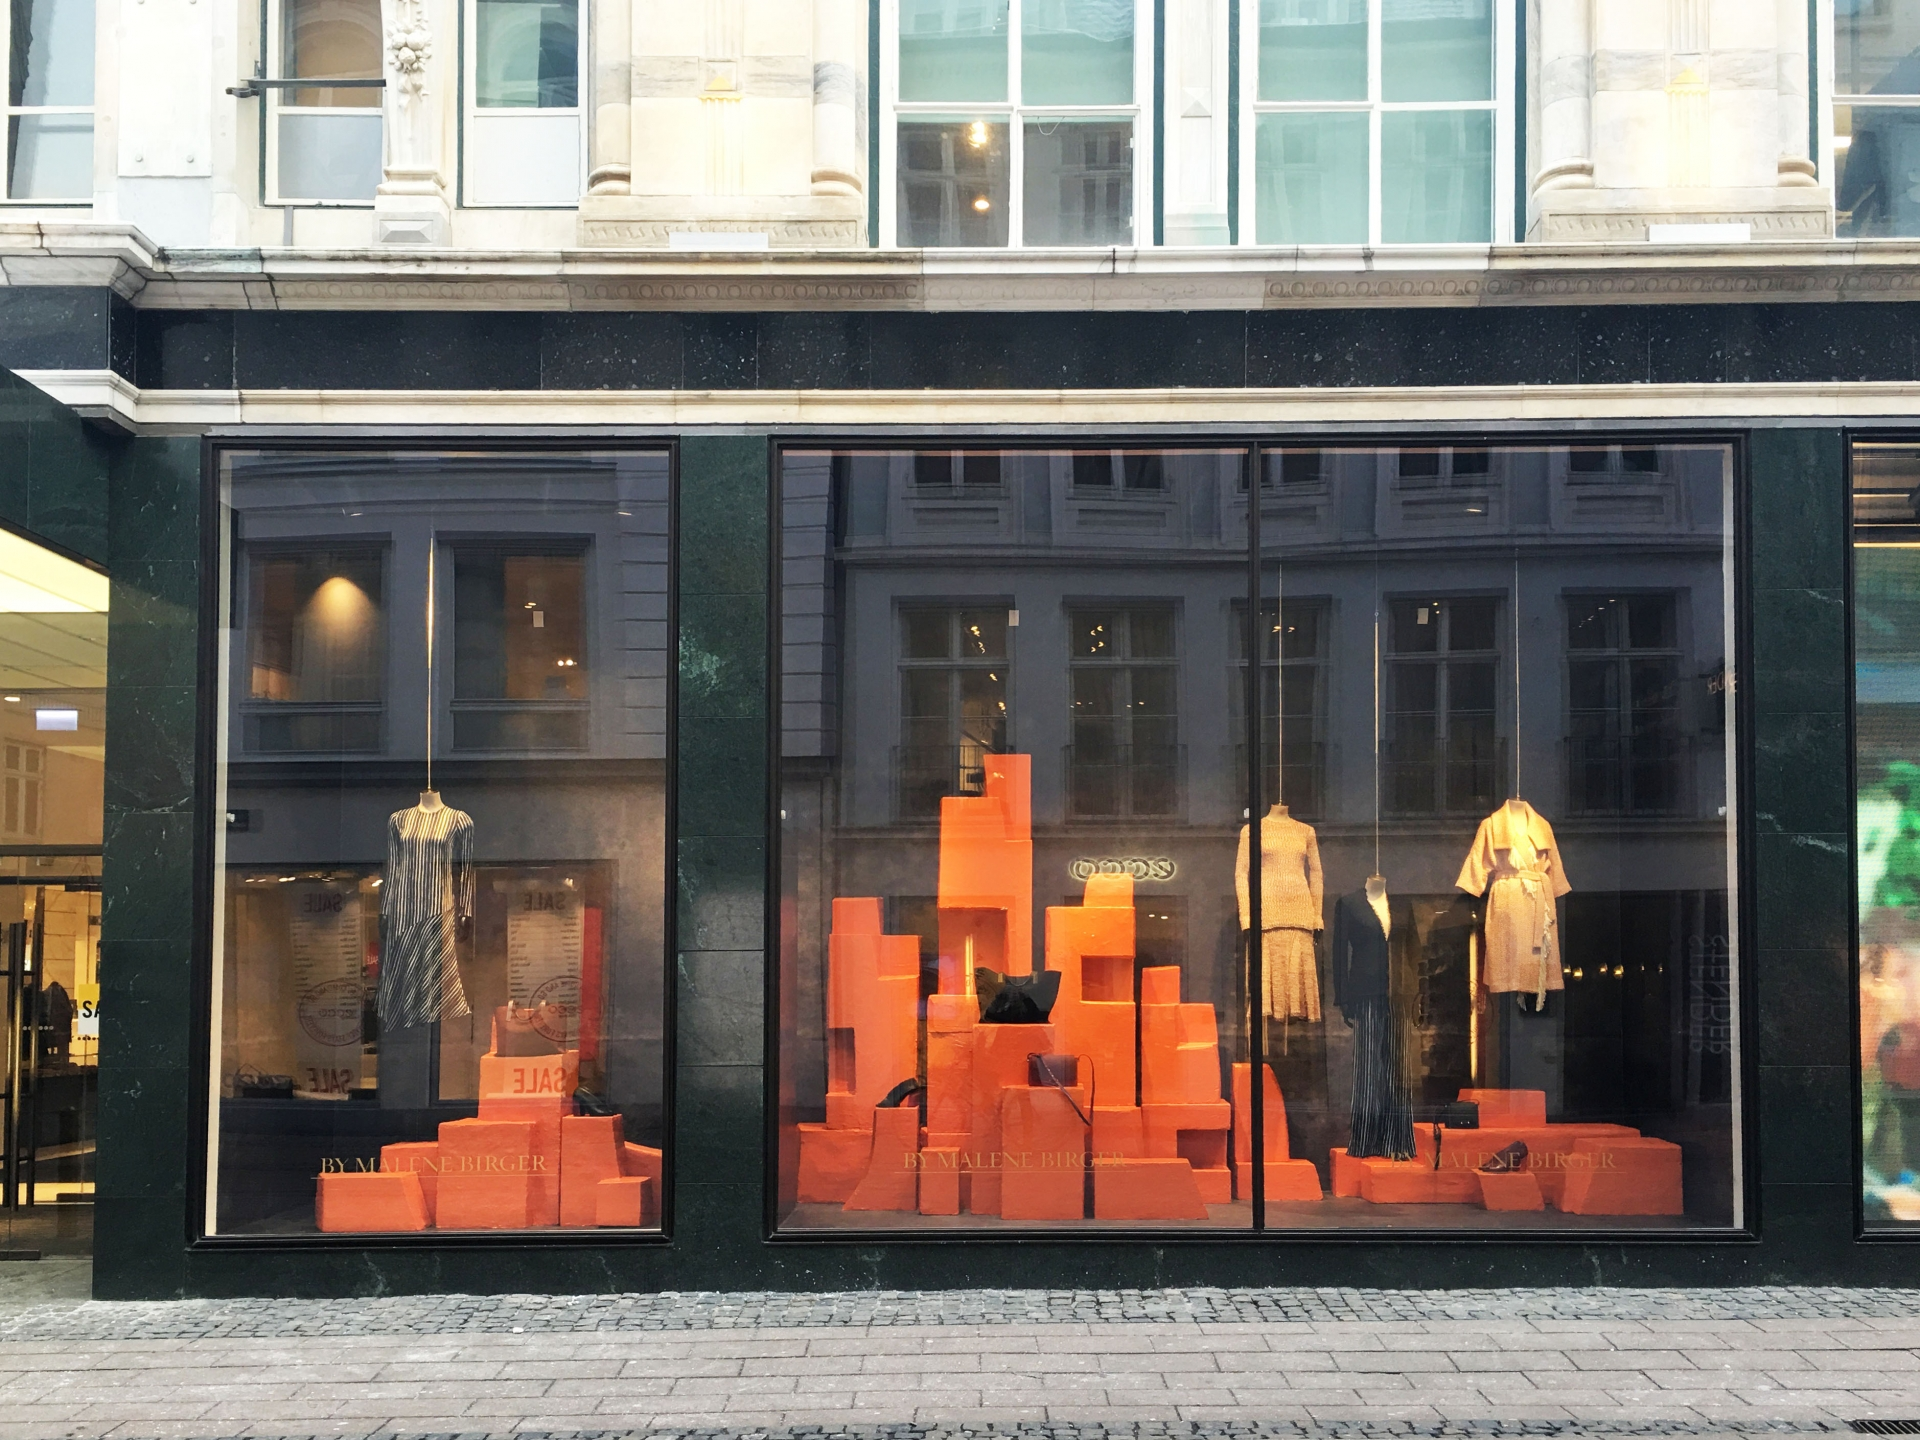 Molly Kyhl by malene birger window